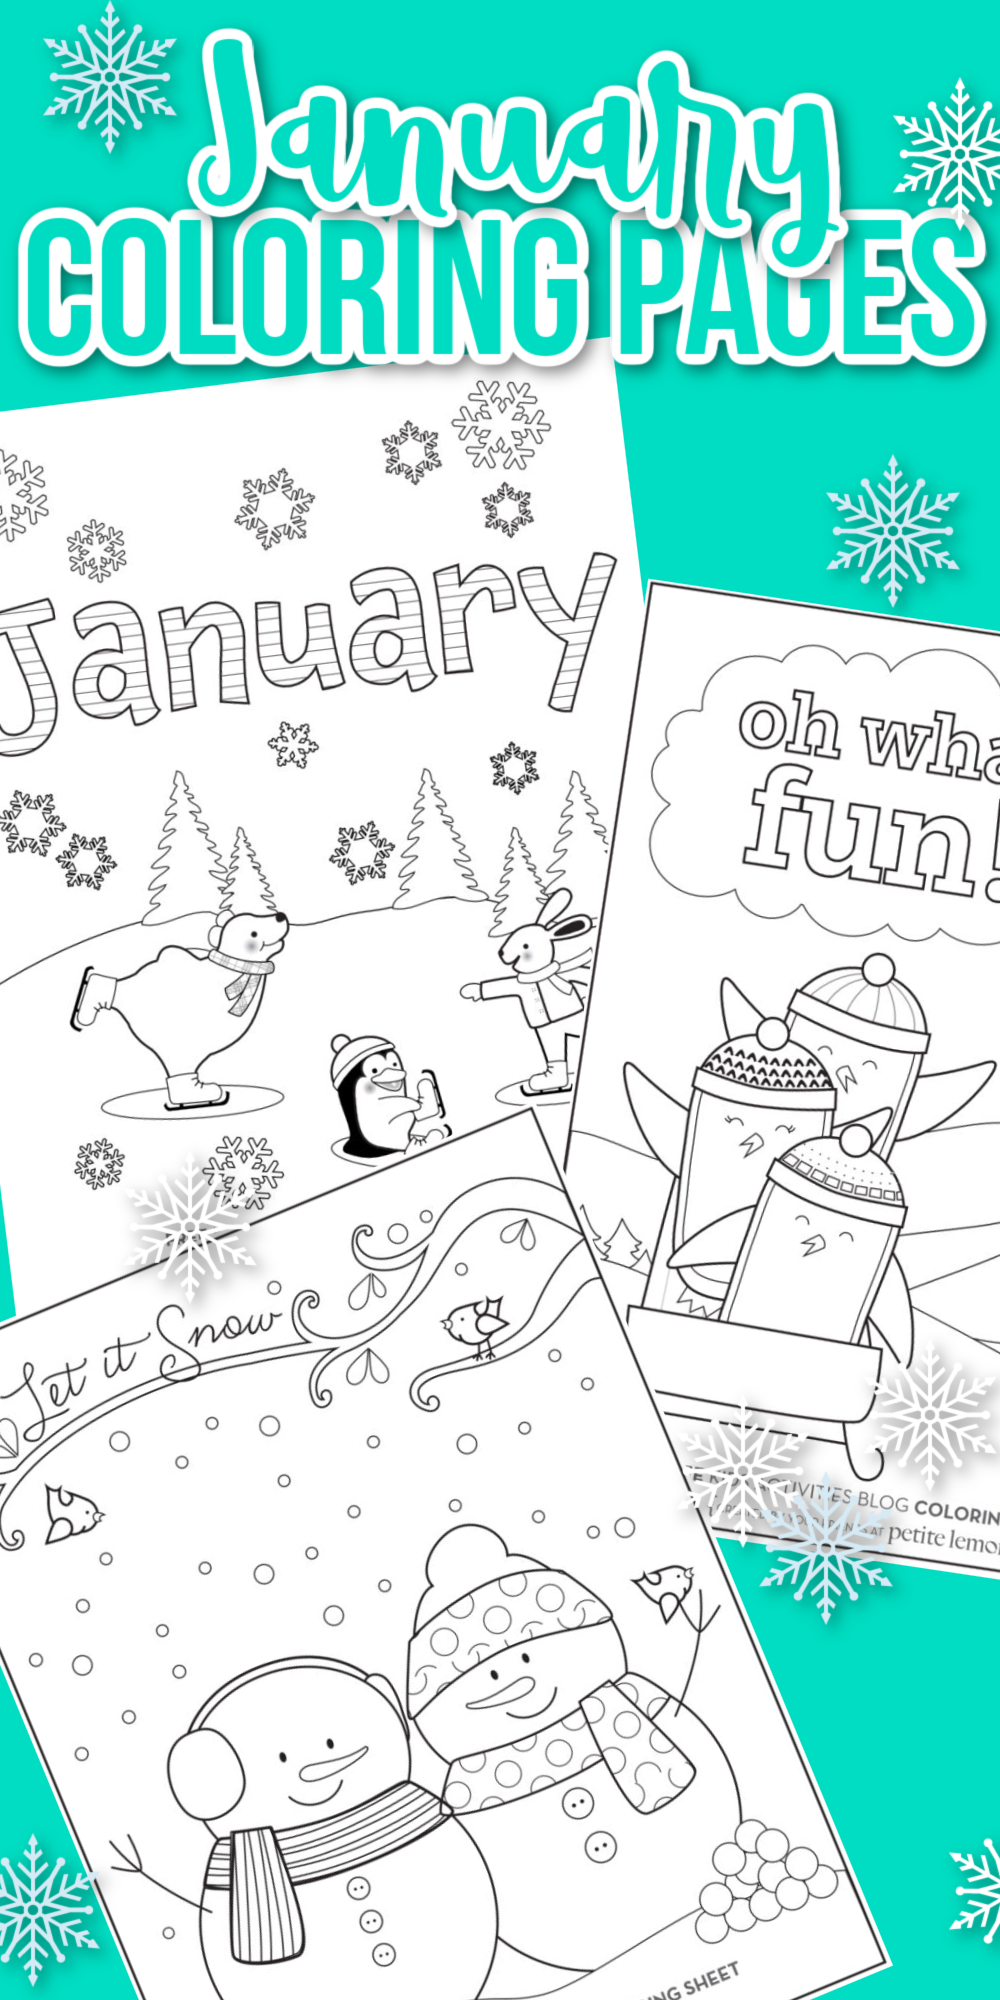 Free January Coloring Pages In 2021 Kids Printable Coloring Pages Coloring For Kids Free Free Kids Coloring Pages